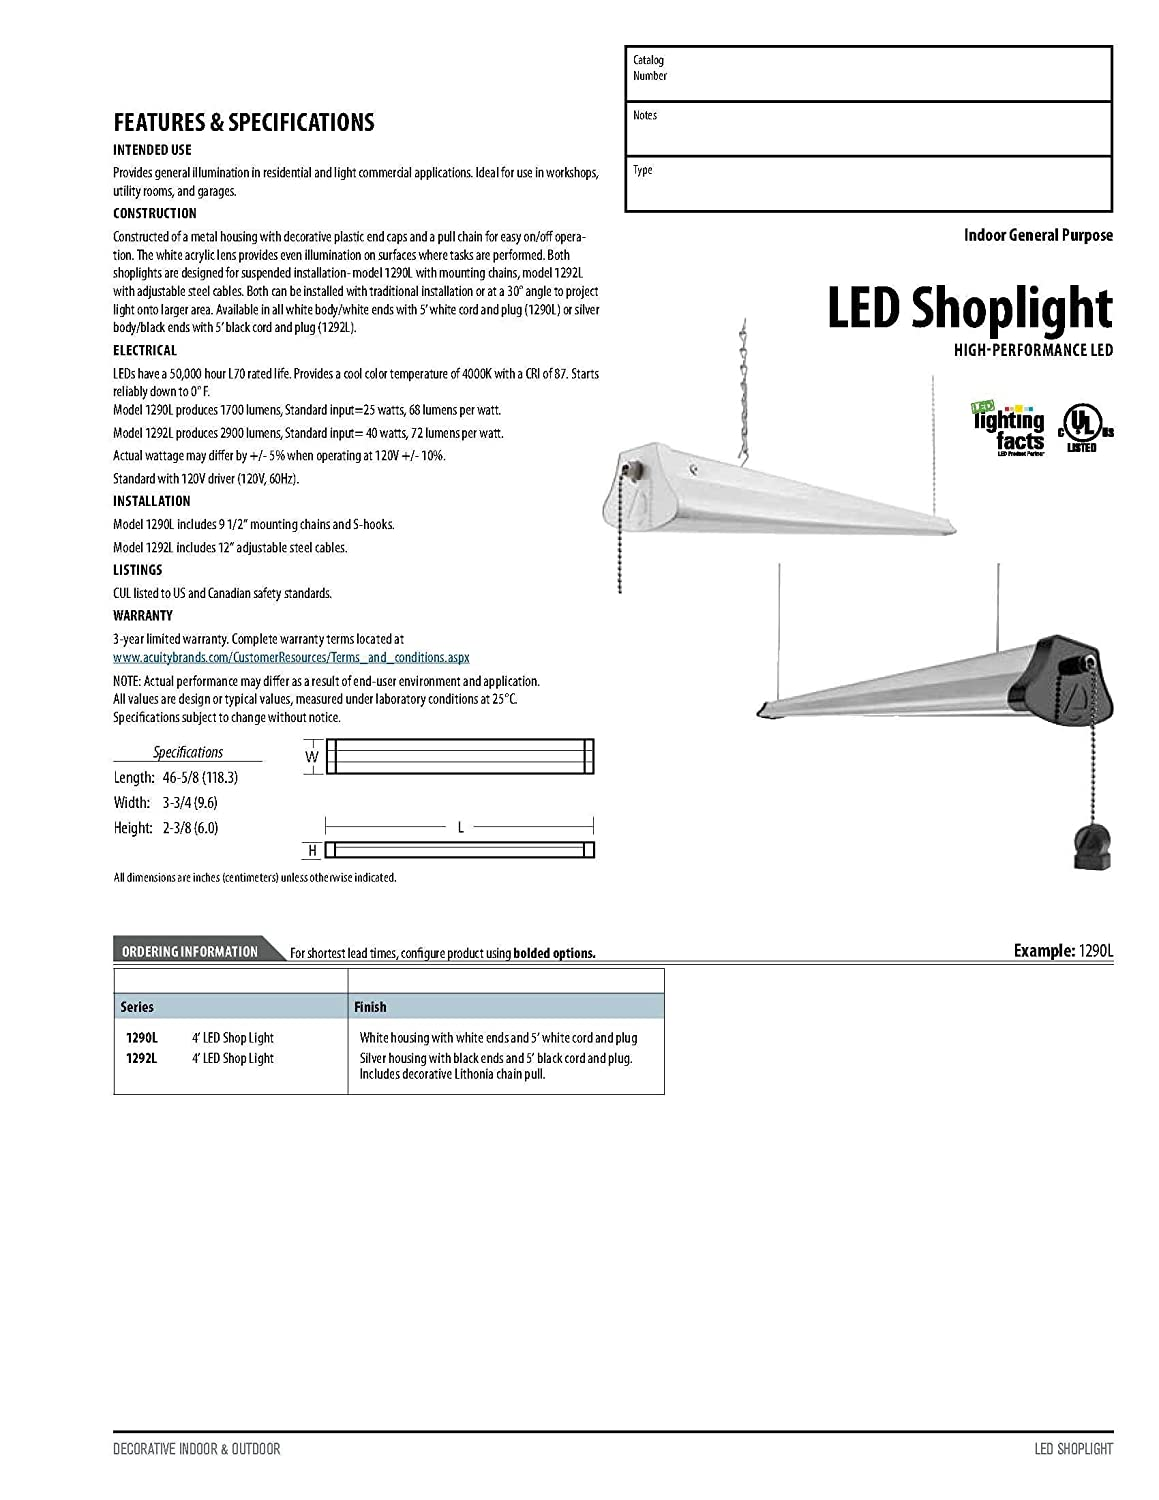 Lithonia Lighting Led Wiring Installation Shop Light Diagram Imageresizertoolcom Lights Of America 4 Foot